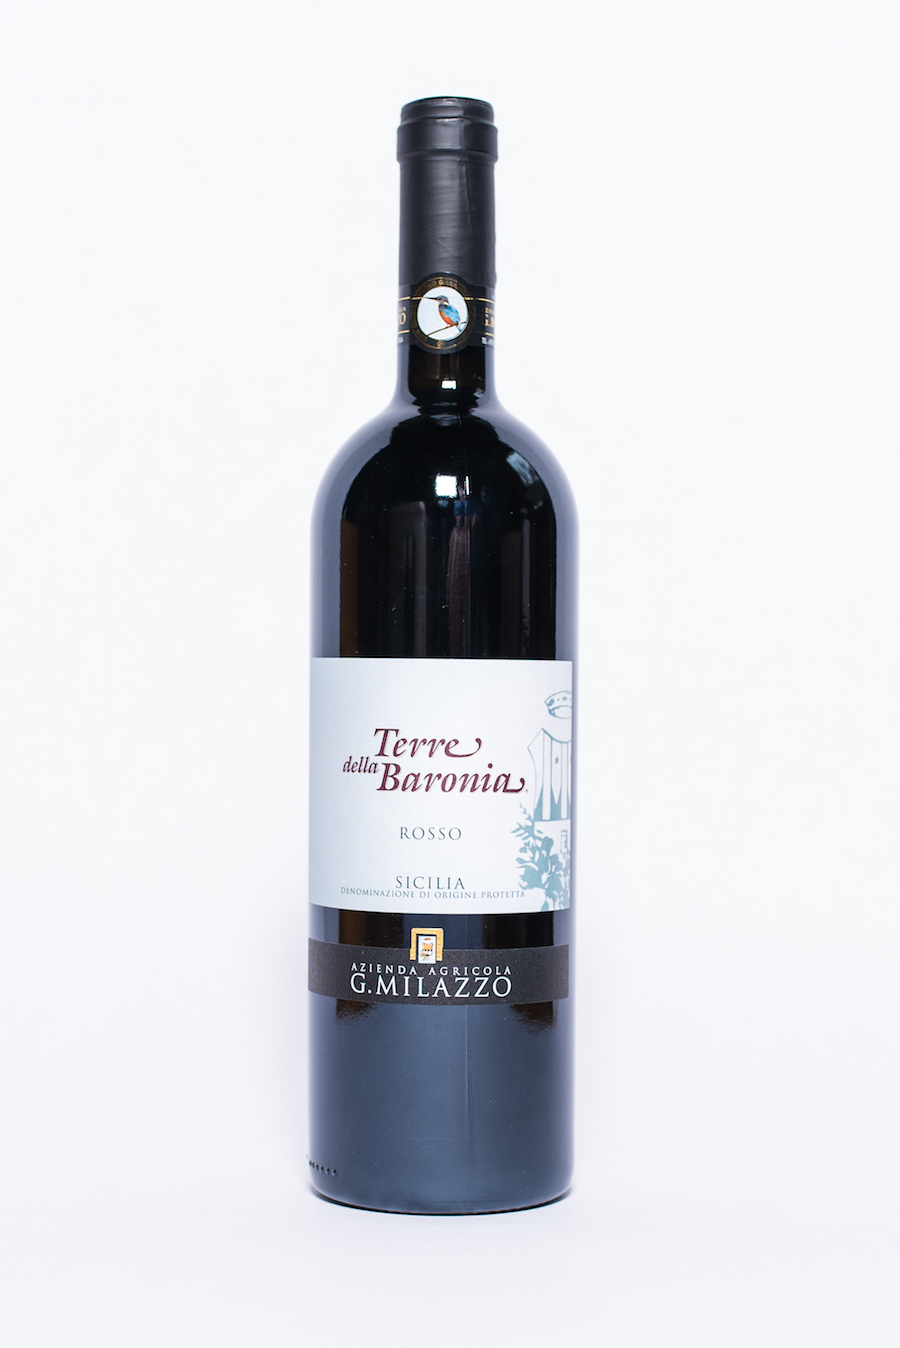 Terre della Baronia Rosso 2013    Producer:   Azienda Agricola G. Milazzo    Region : Sicily  Grapes:  Nero d'Avola, Perricone  Characteristics:  Opulent mouthfeel, smooth with ripe red fruits. Refined tannins lead to a long and persistent finish. A big dark red that will pair well with red meats and rich sauces.